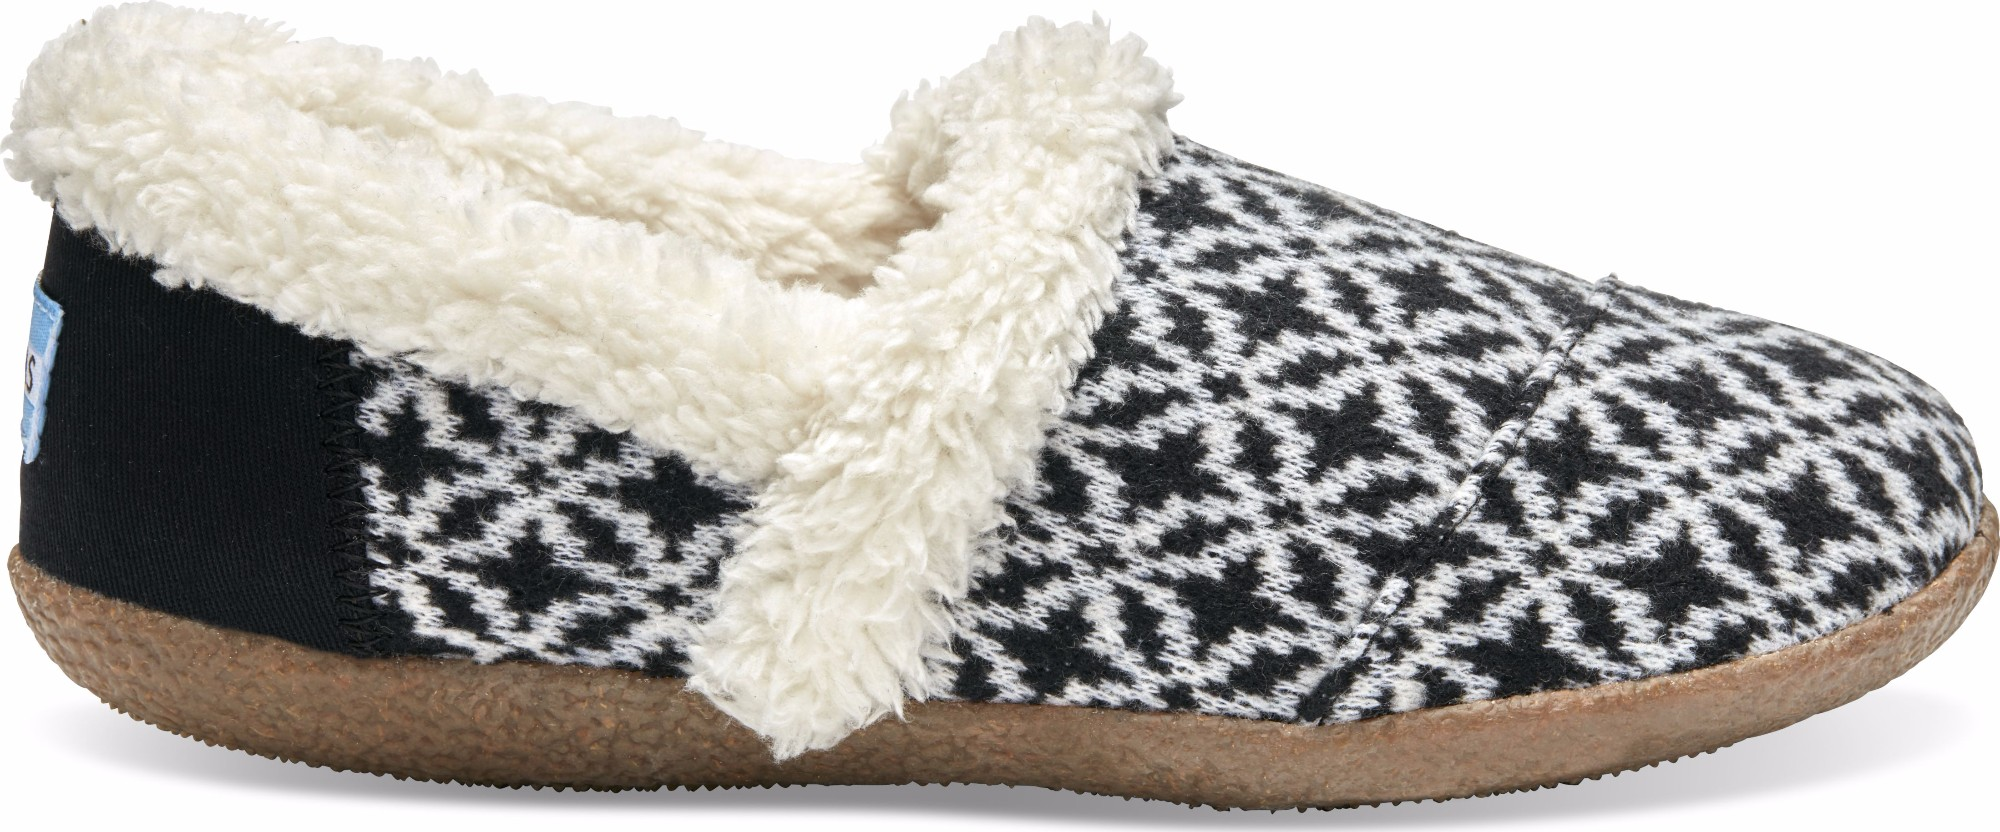 TOMS Fair Isle Woven Women's Slippers Black/White 42